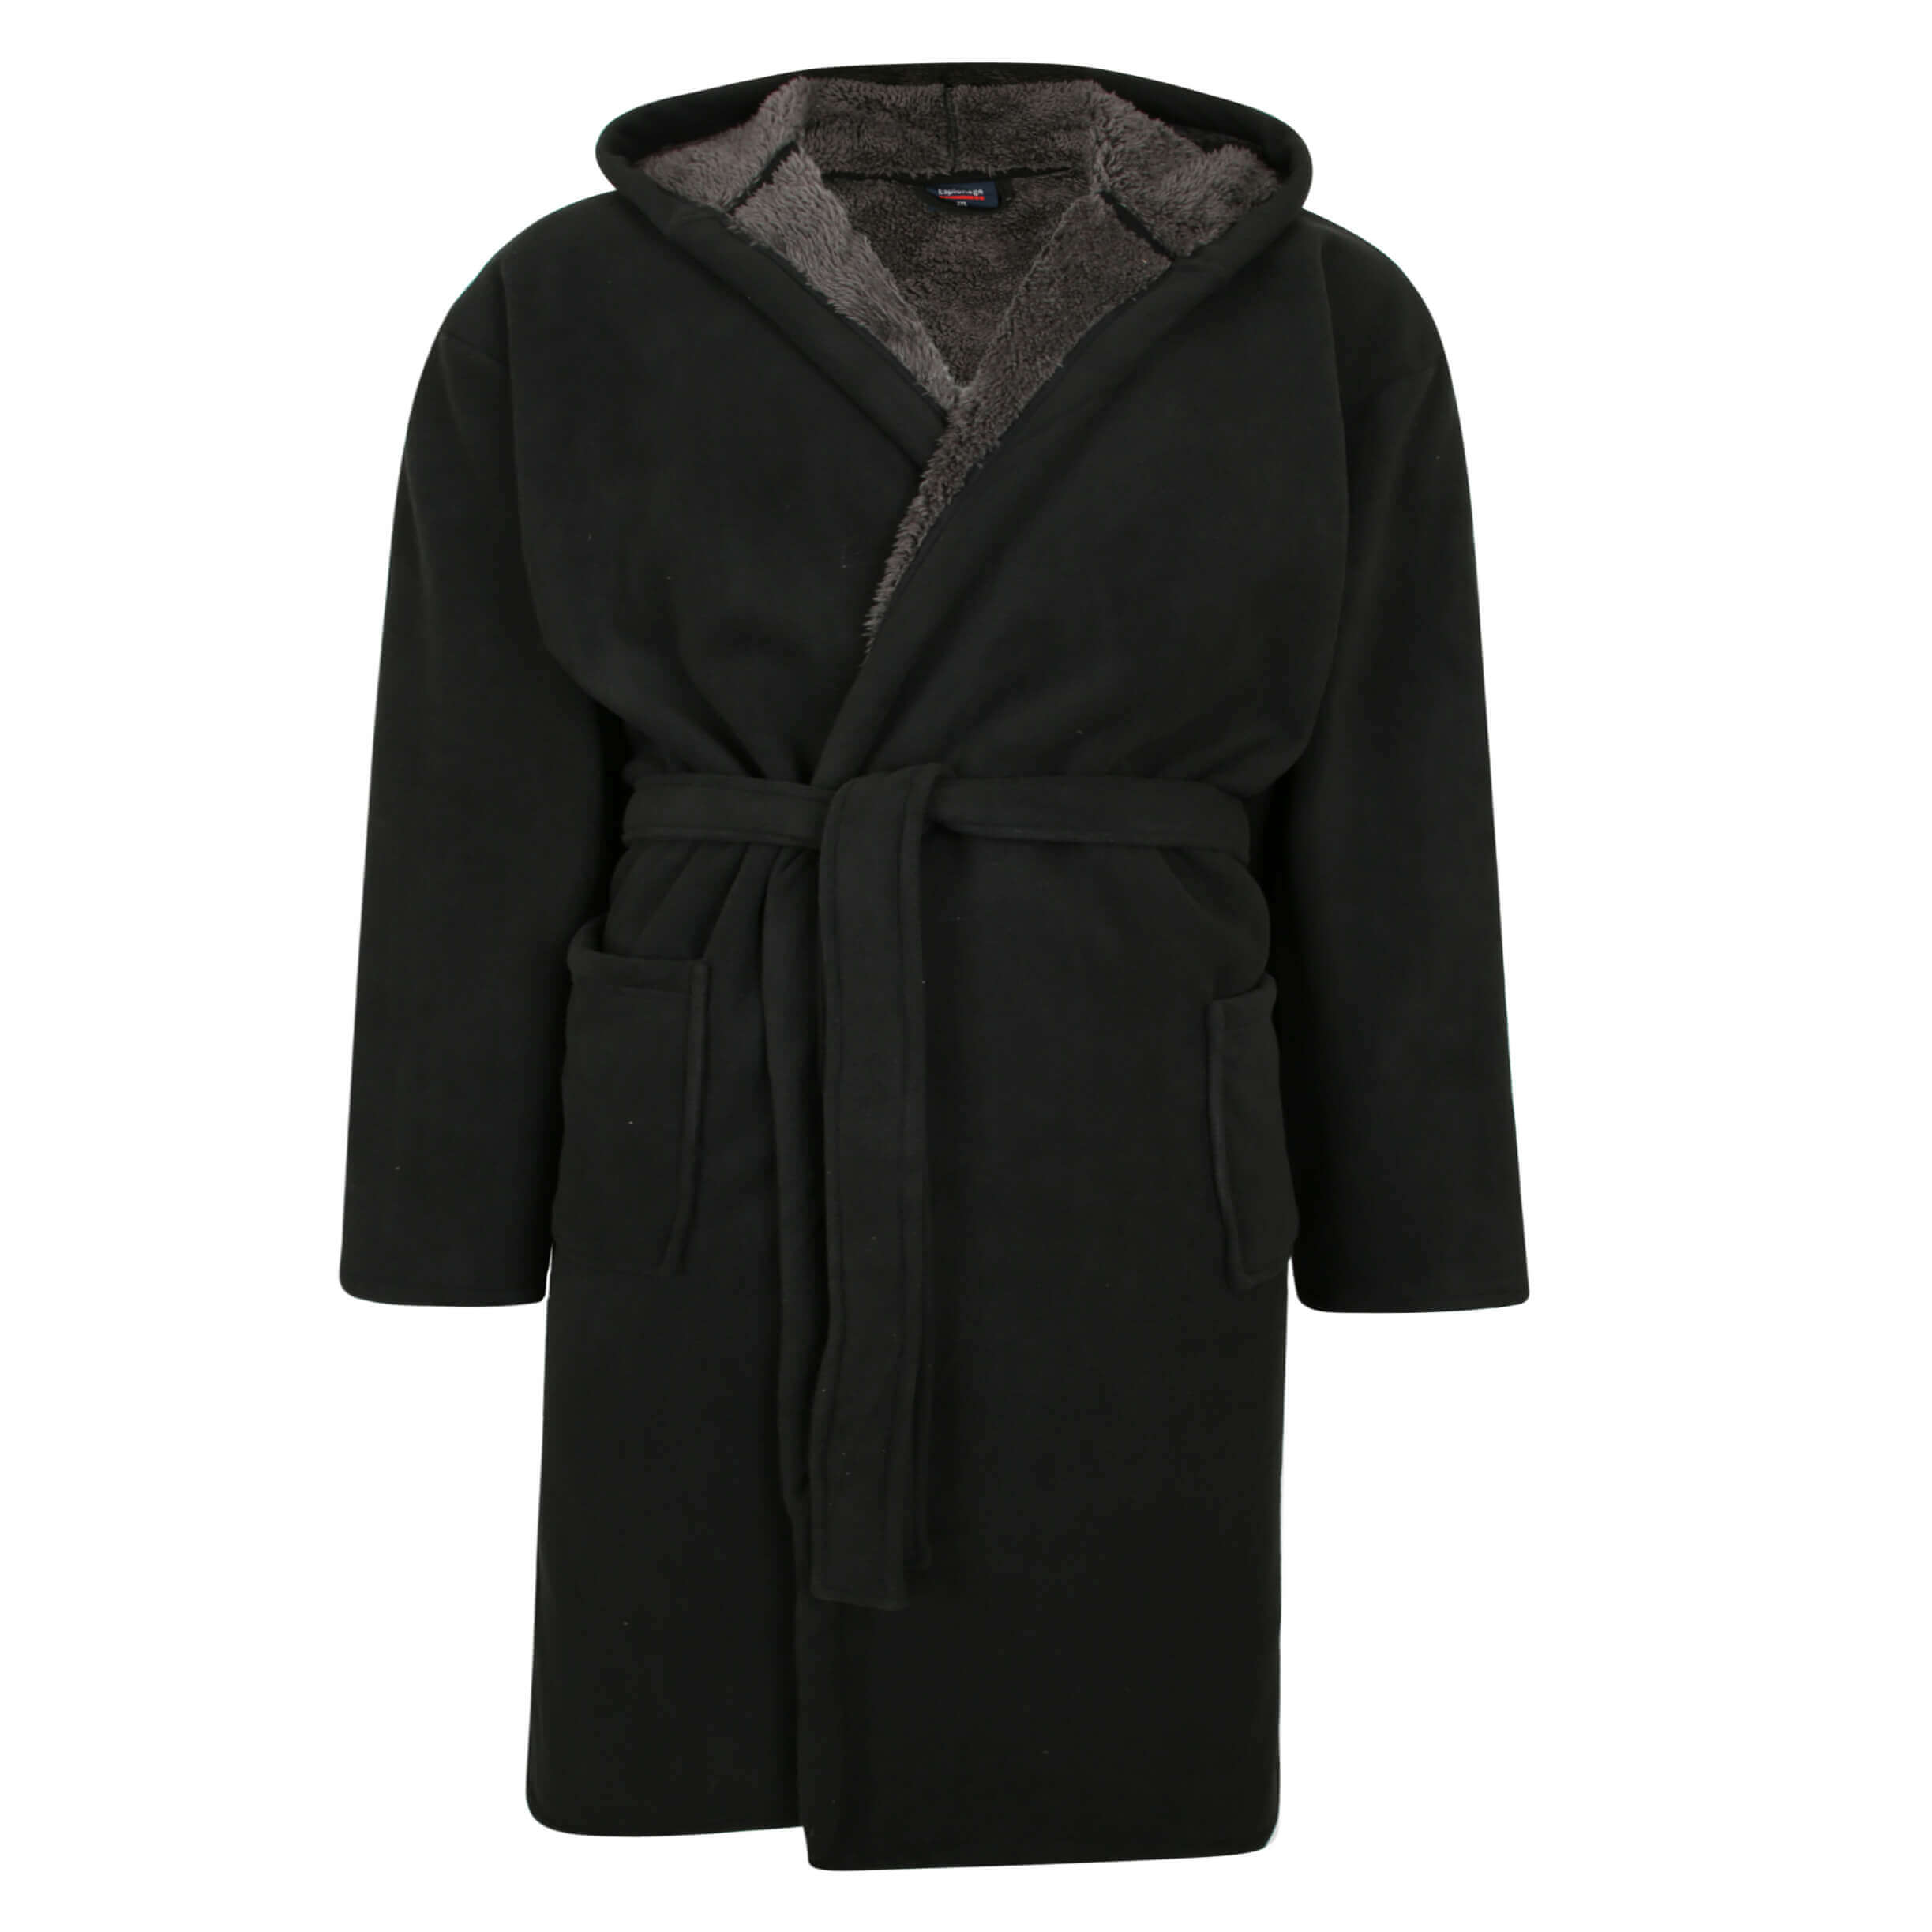 Espionage Hooded Dressing Gown